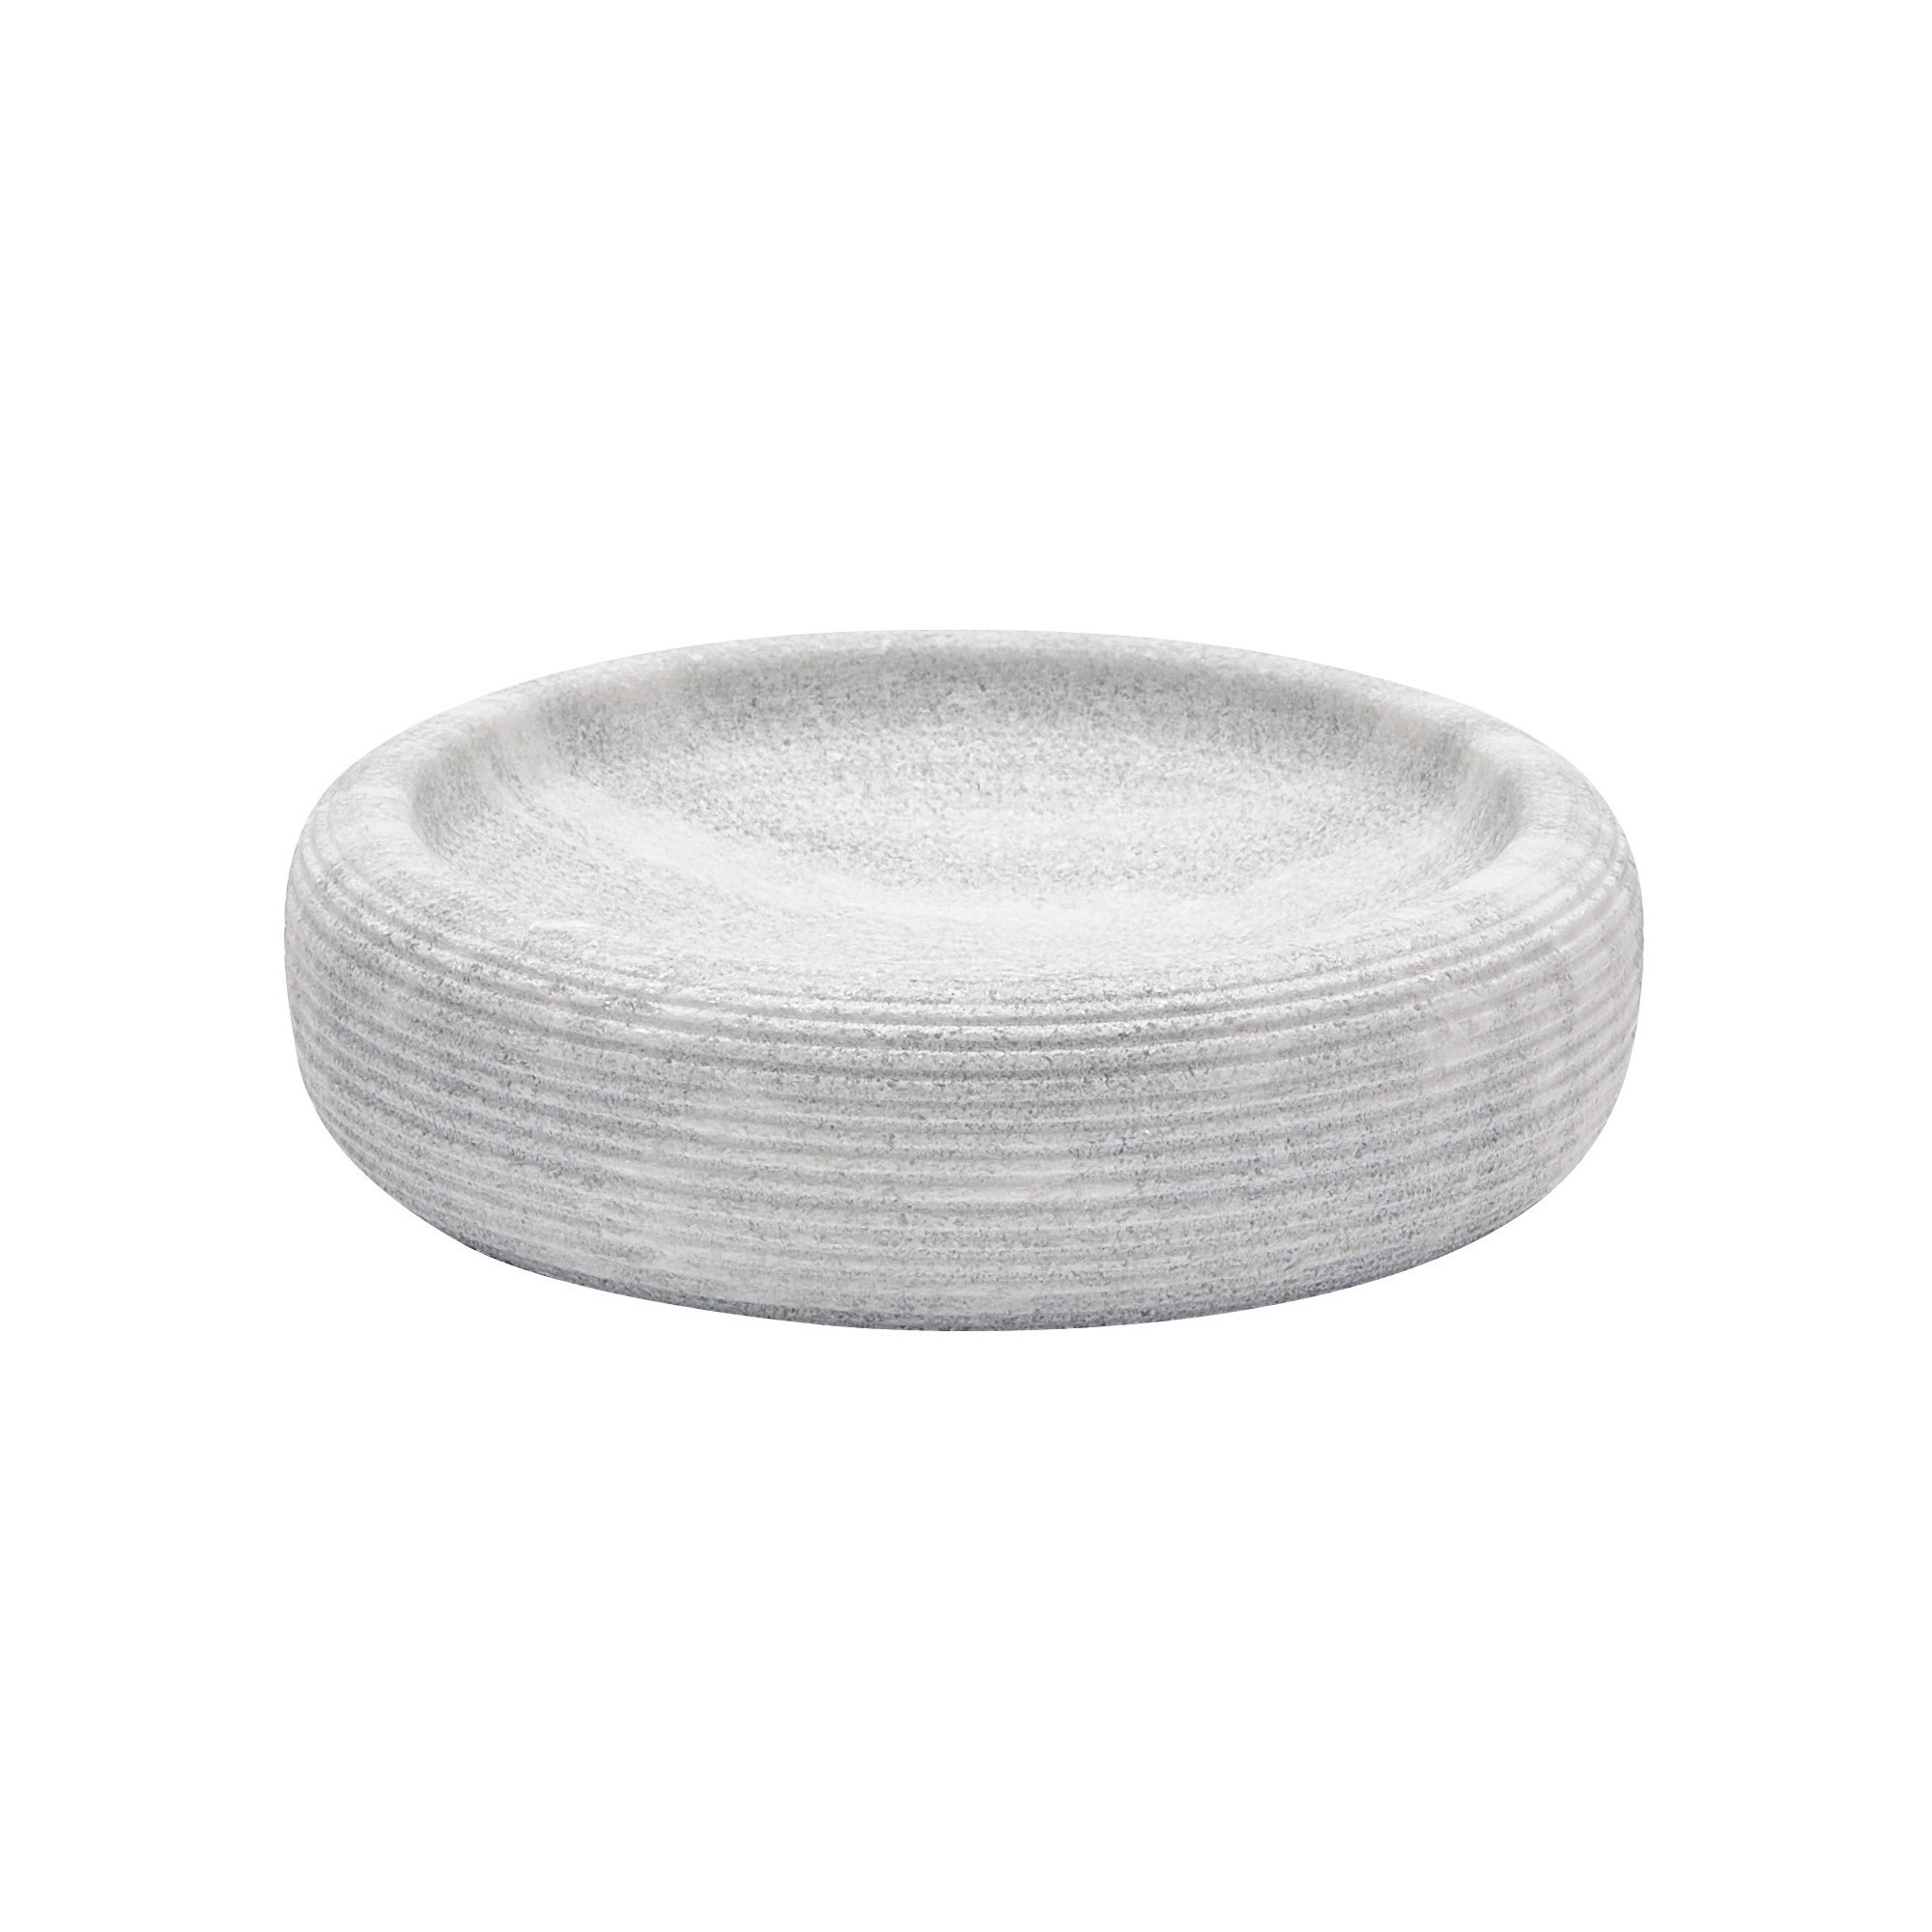 Aquanova Zona Natural Stone Soap Dish